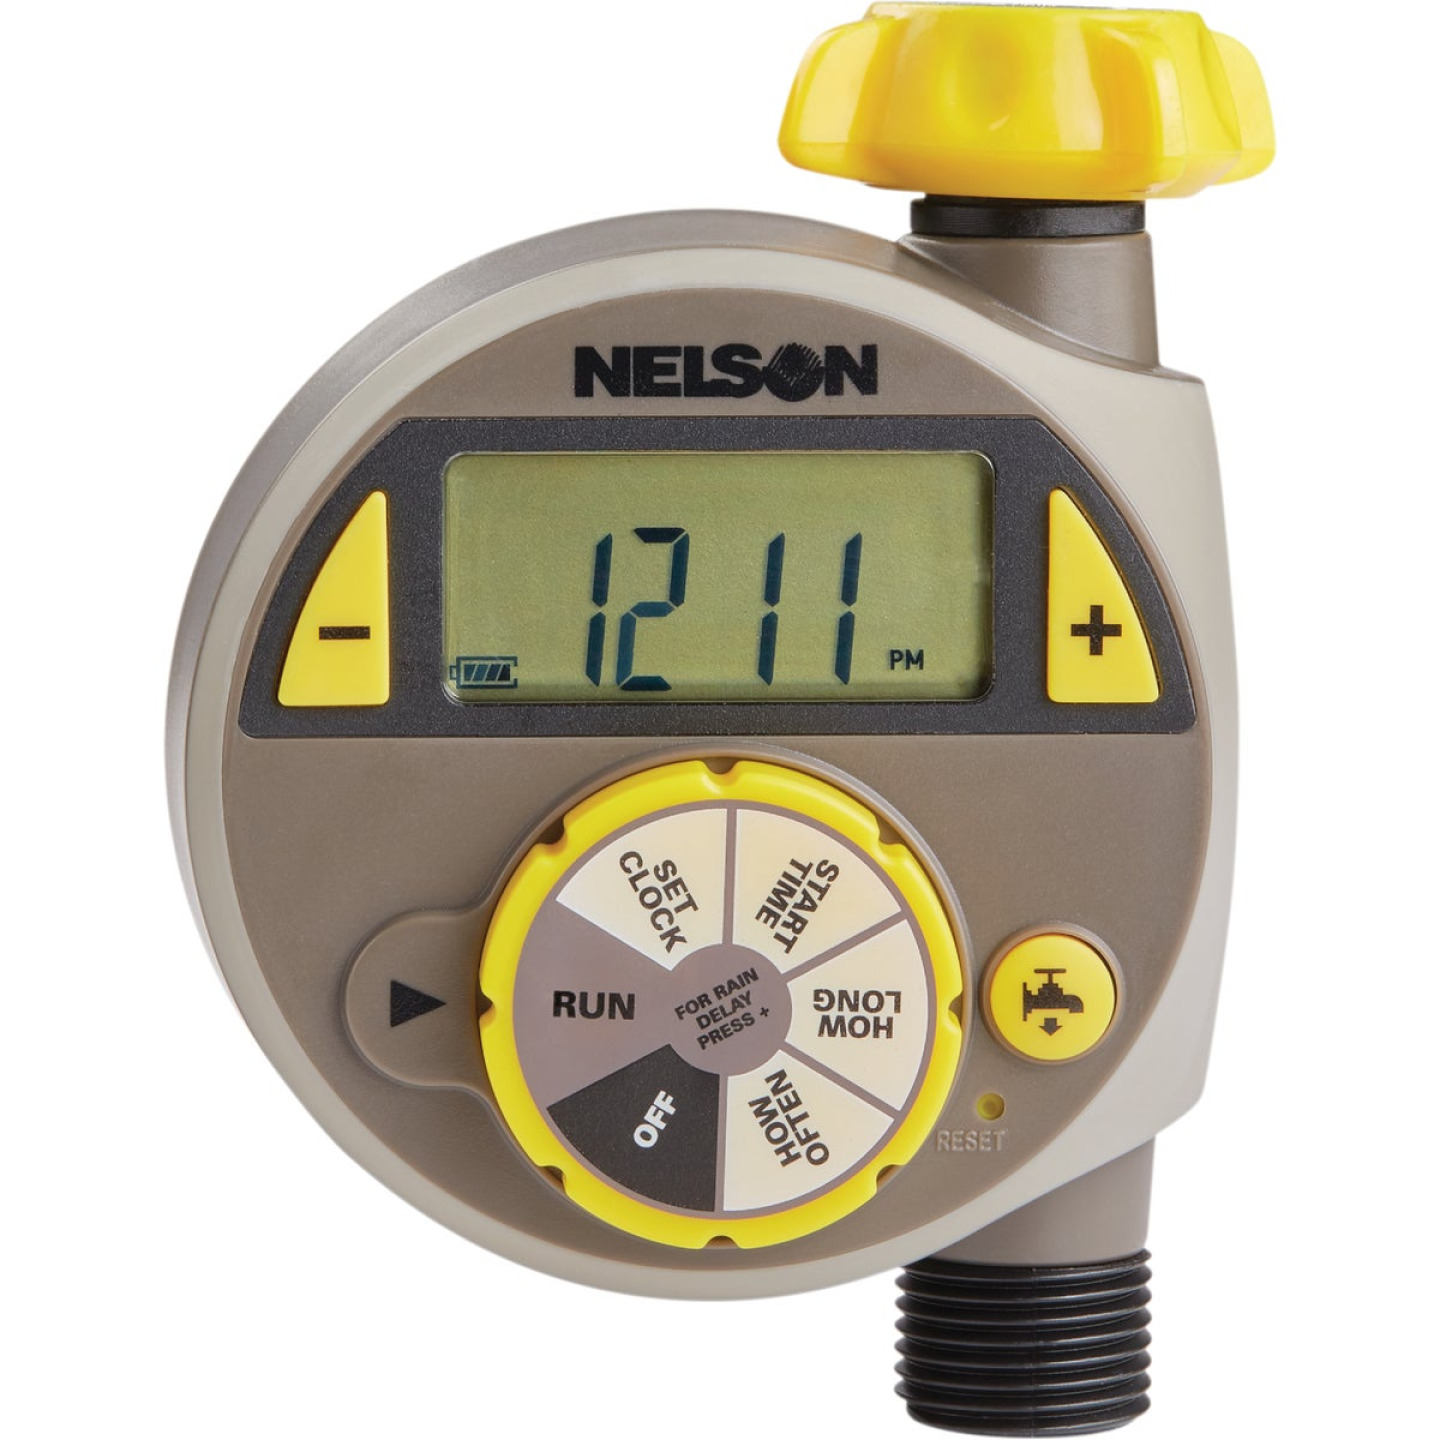 Nelson Electronic Single Outlet Watering Timer Image 1